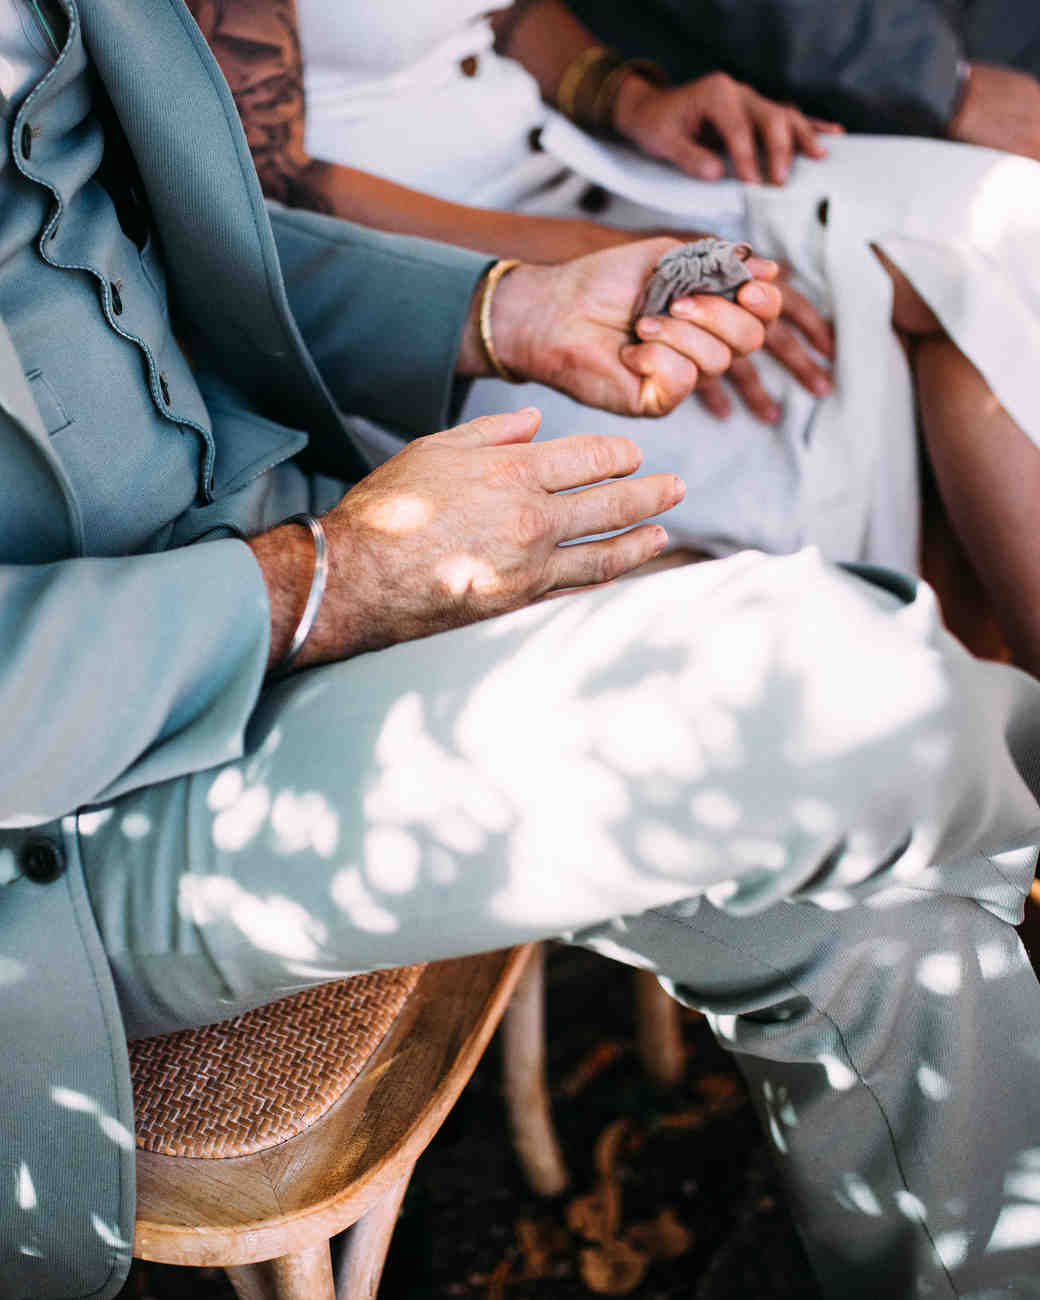 thomas jared wedding ceremony rings held by guests